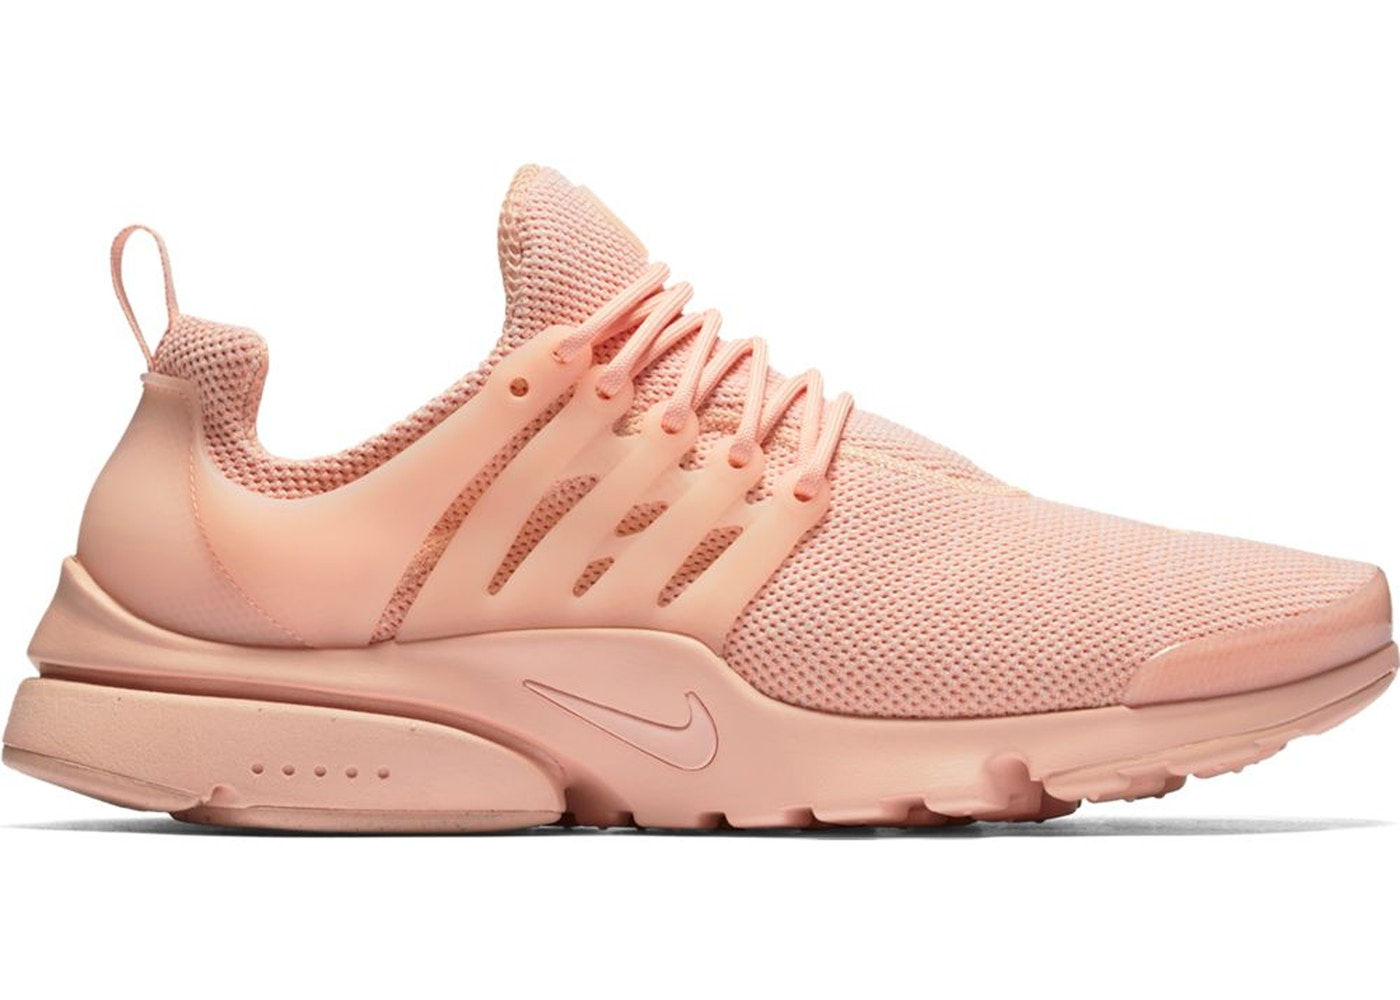 aa8a3483c575 Air Presto Ultra Breathe Arctic Orange - 898020-800